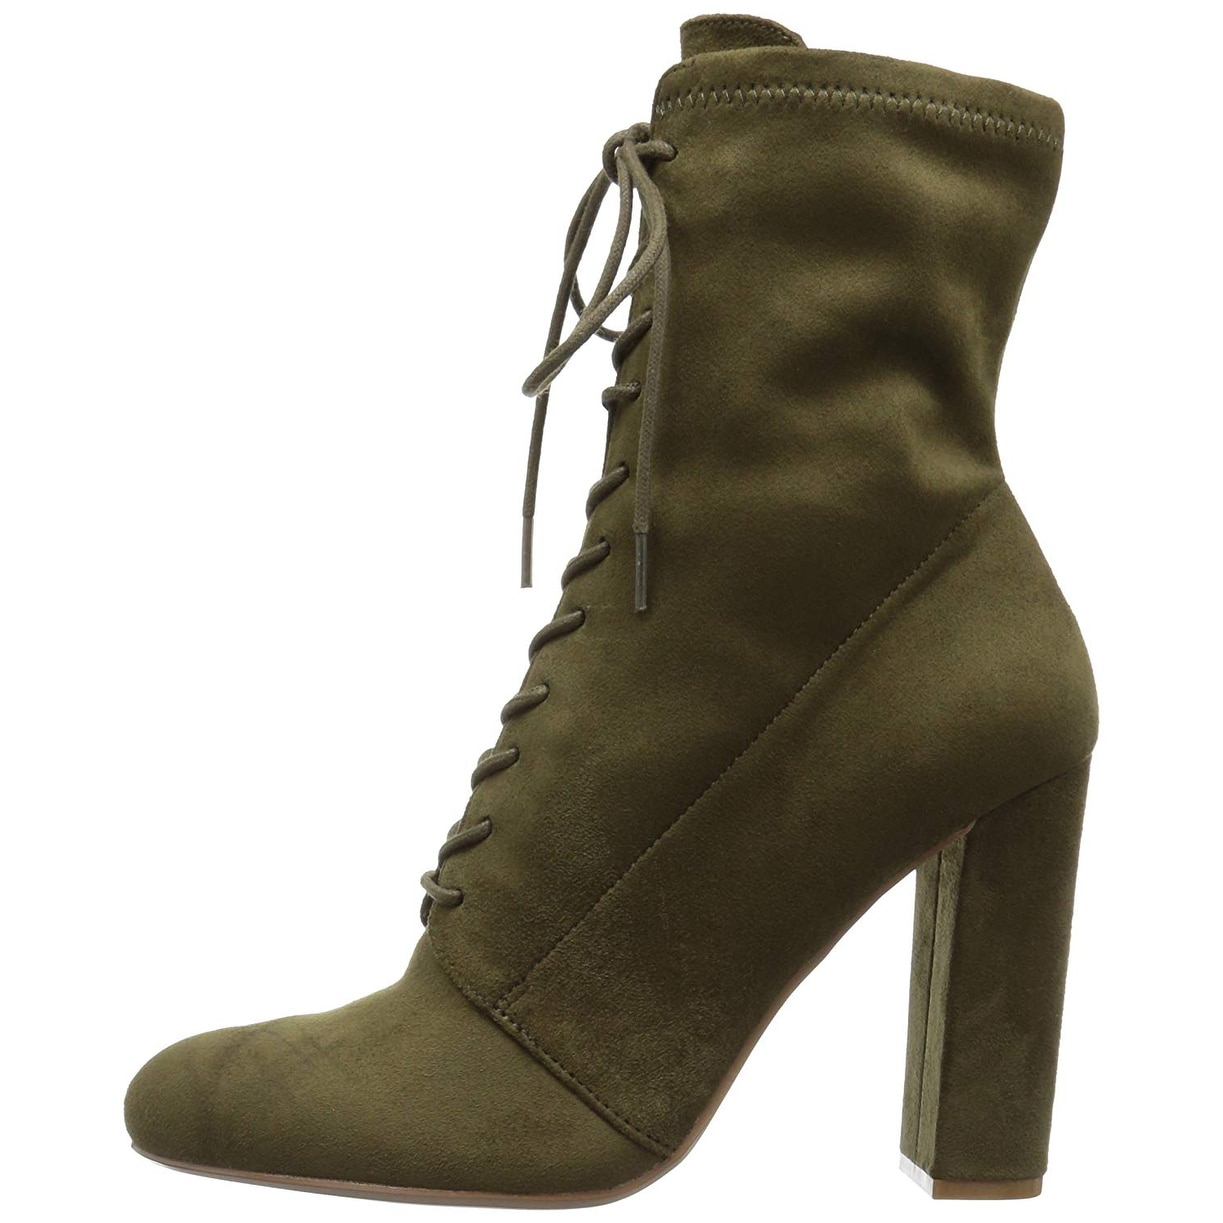 6b9807460dc Steve Madden Women's Shoes   Find Great Shoes Deals Shopping at ...